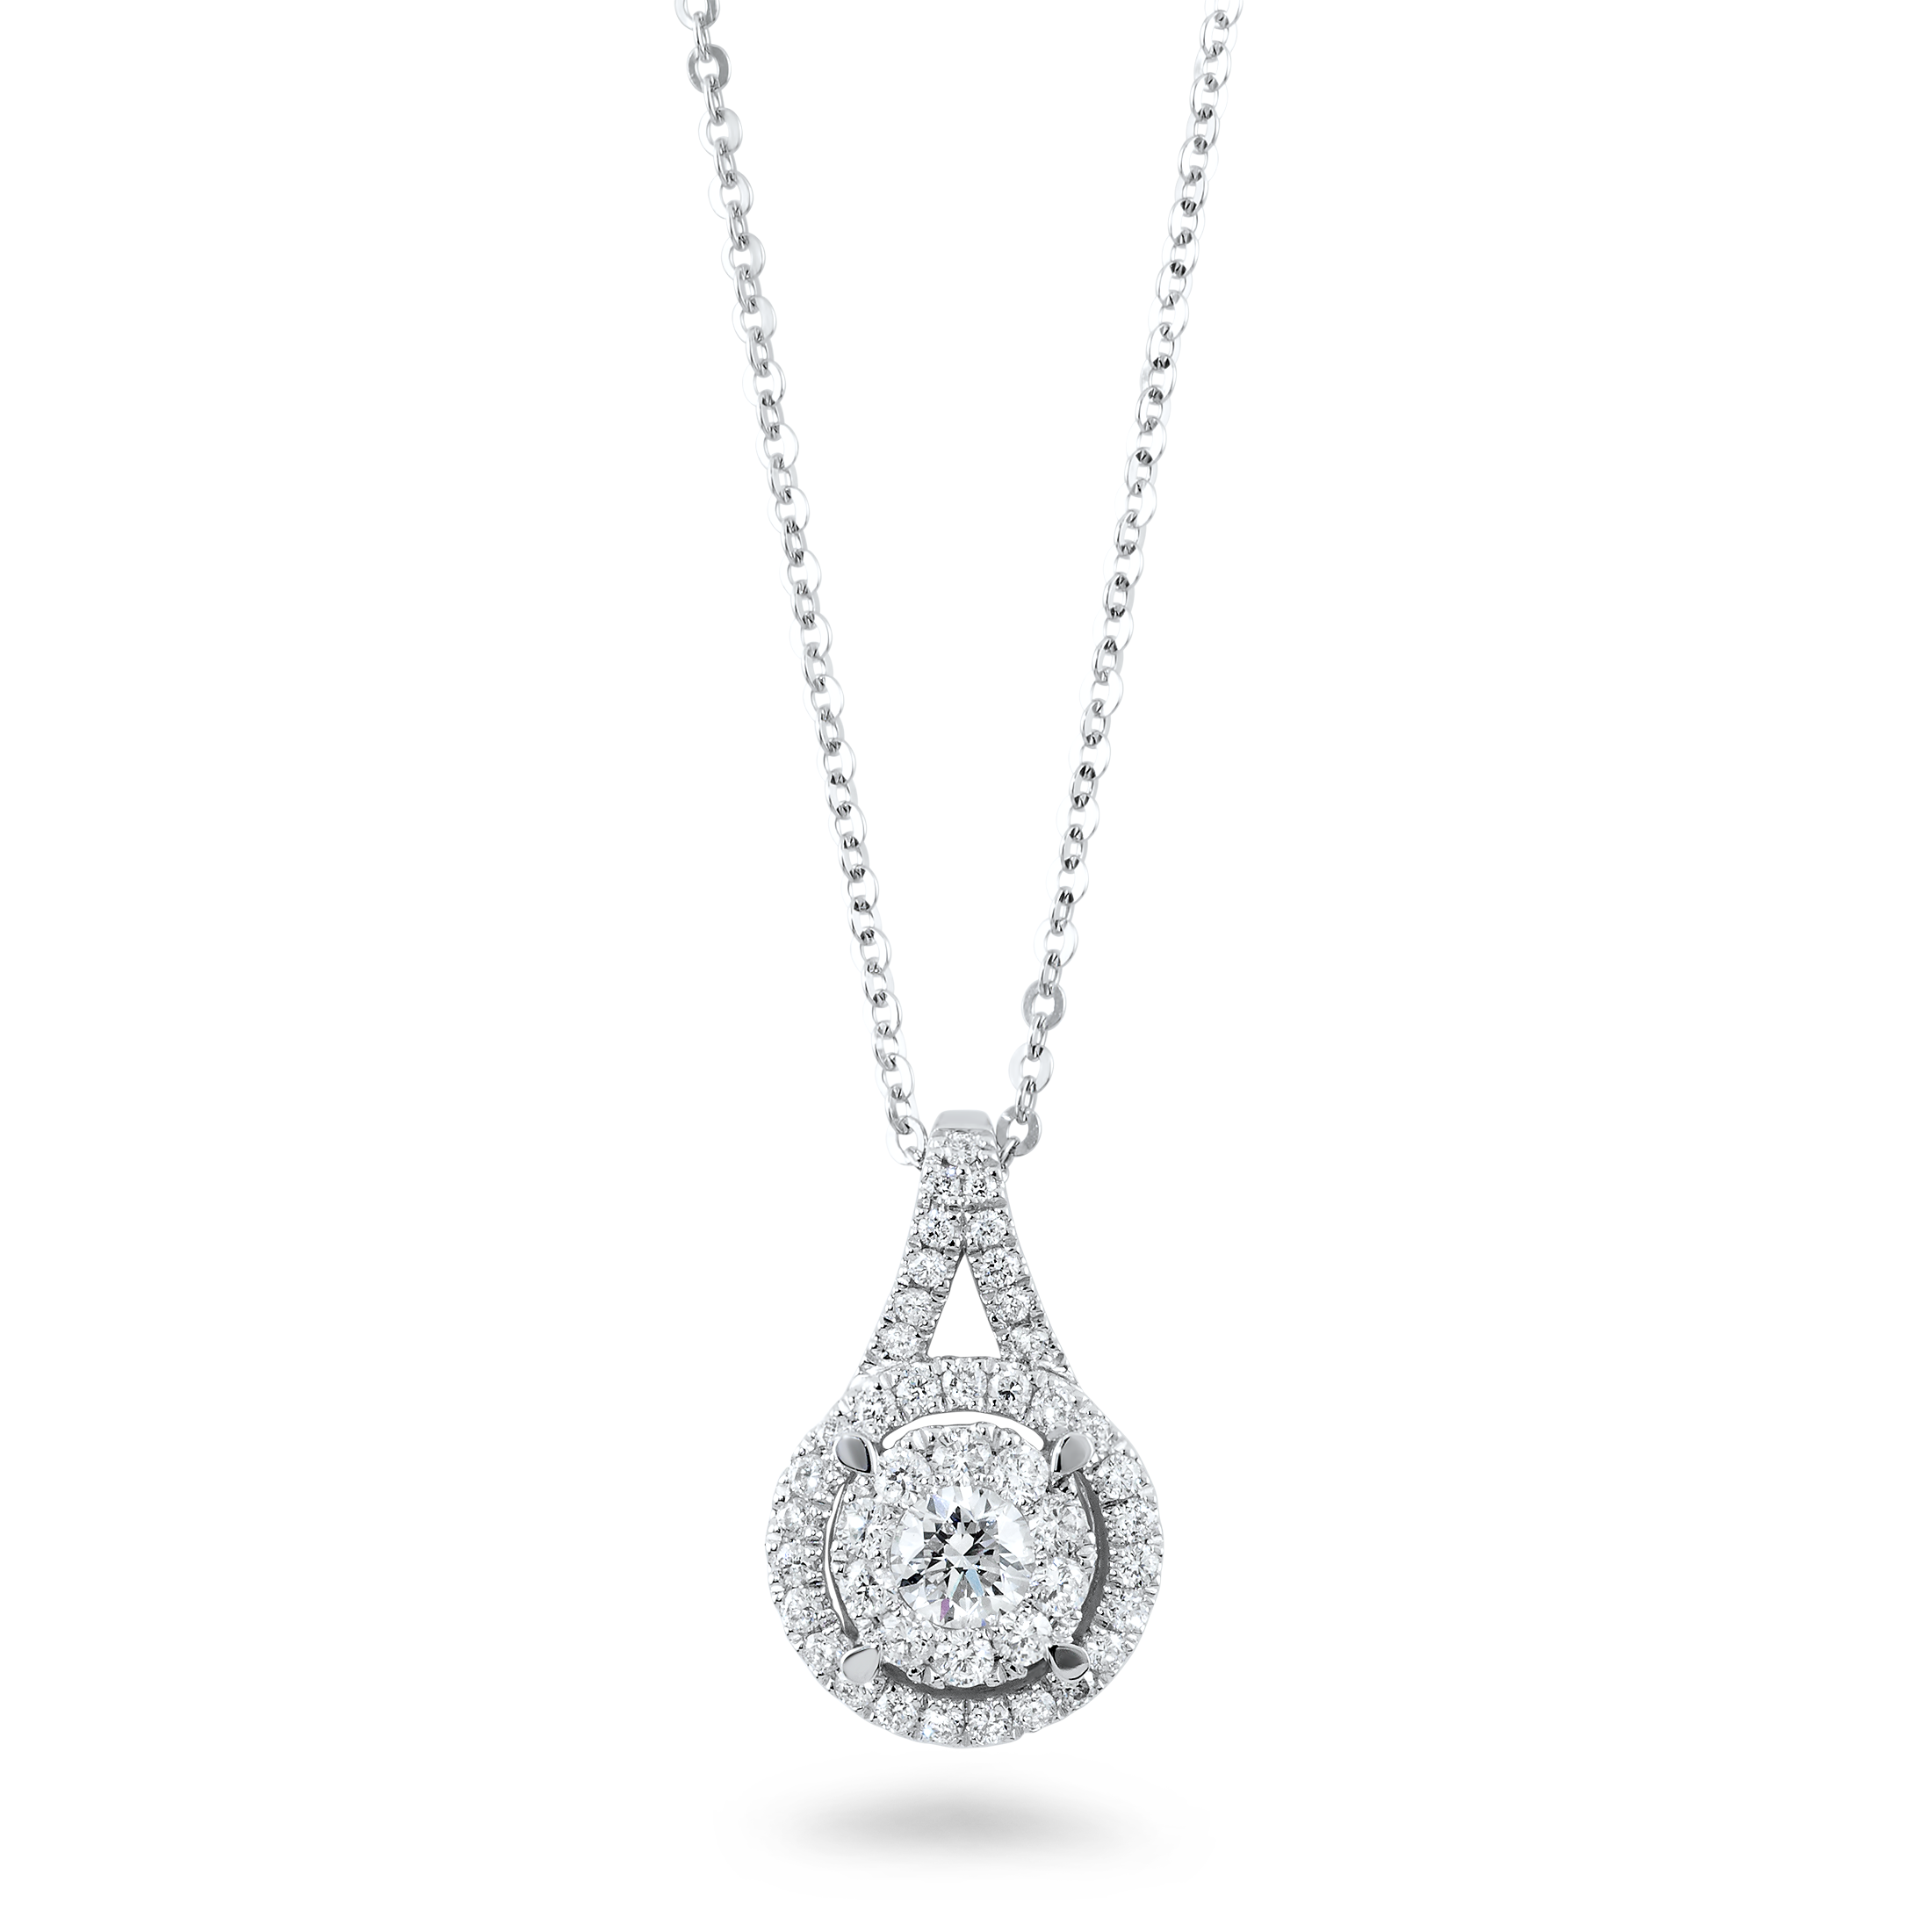 Diamond Necklace PNG - 74791